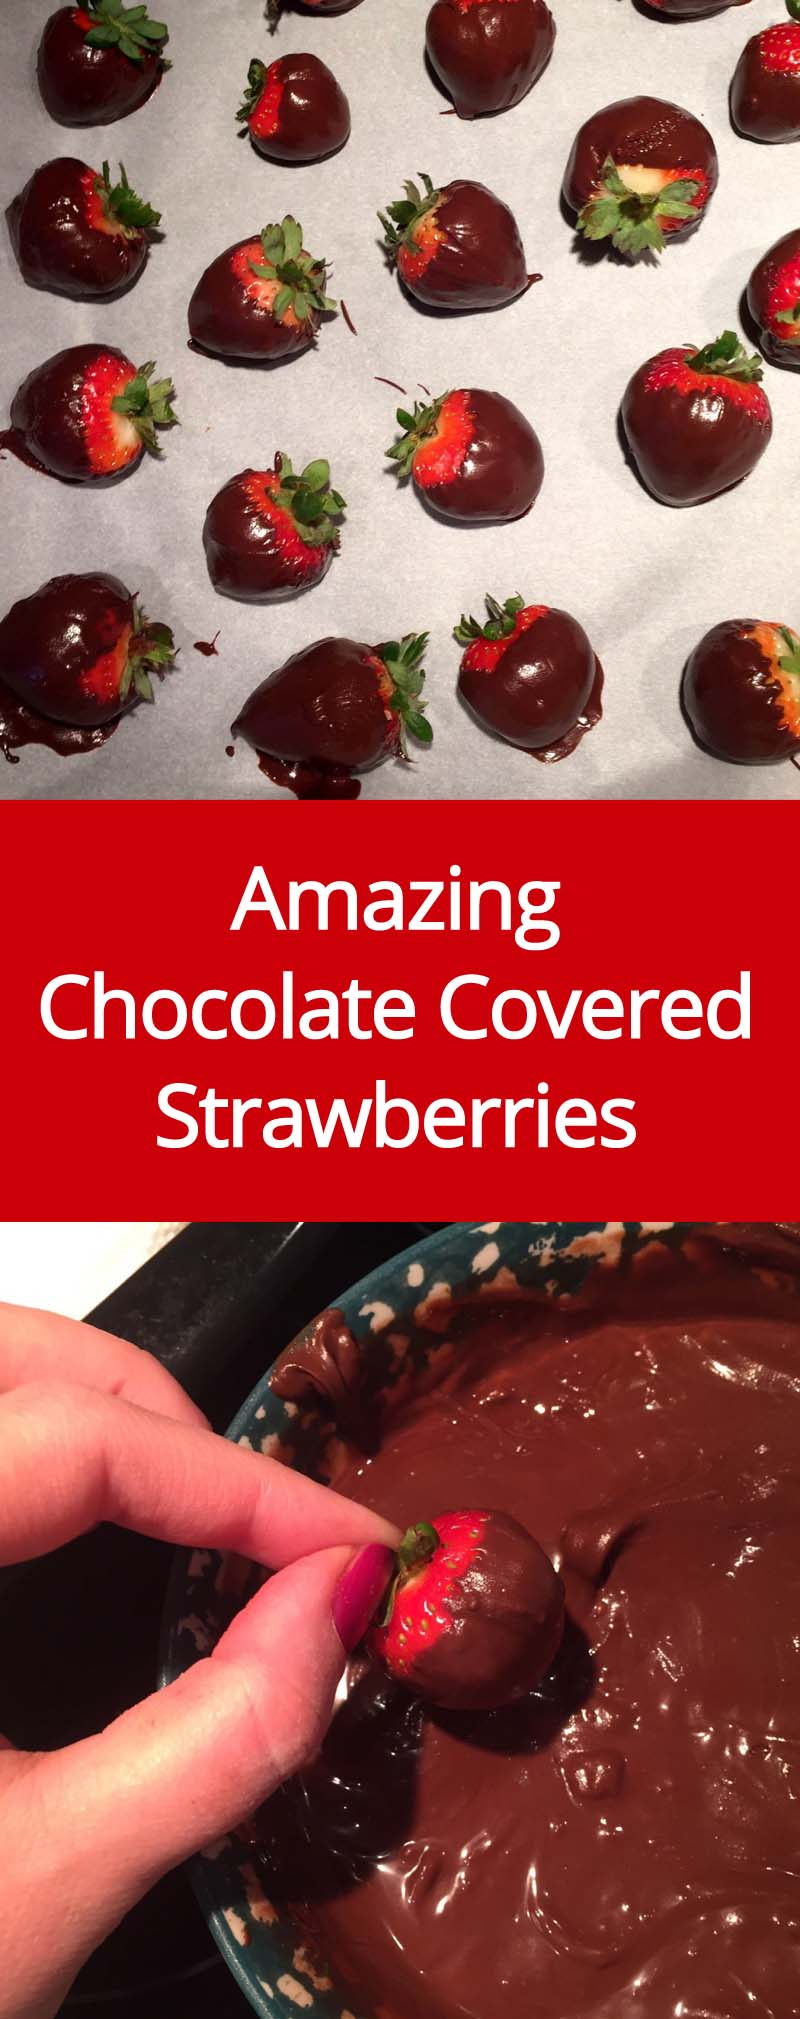 These chocolate covered strawberries are so easy to make and taste amazing! I love homemade chocolate dipped strawberries! Perfect for Valentine's day!